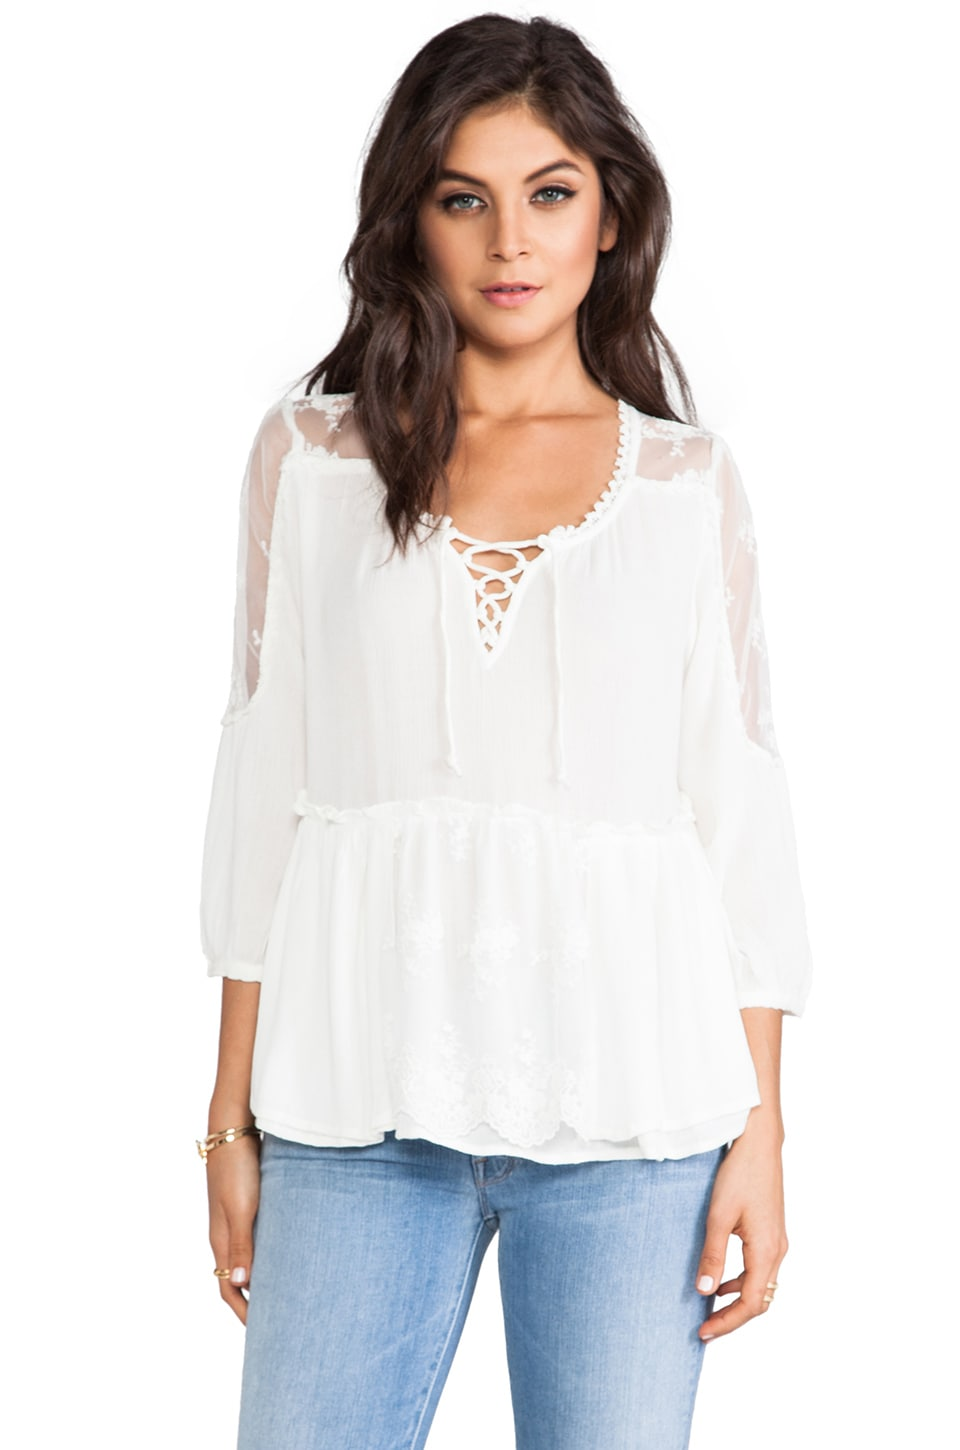 Free People Romance Of The Rose Top in Snow